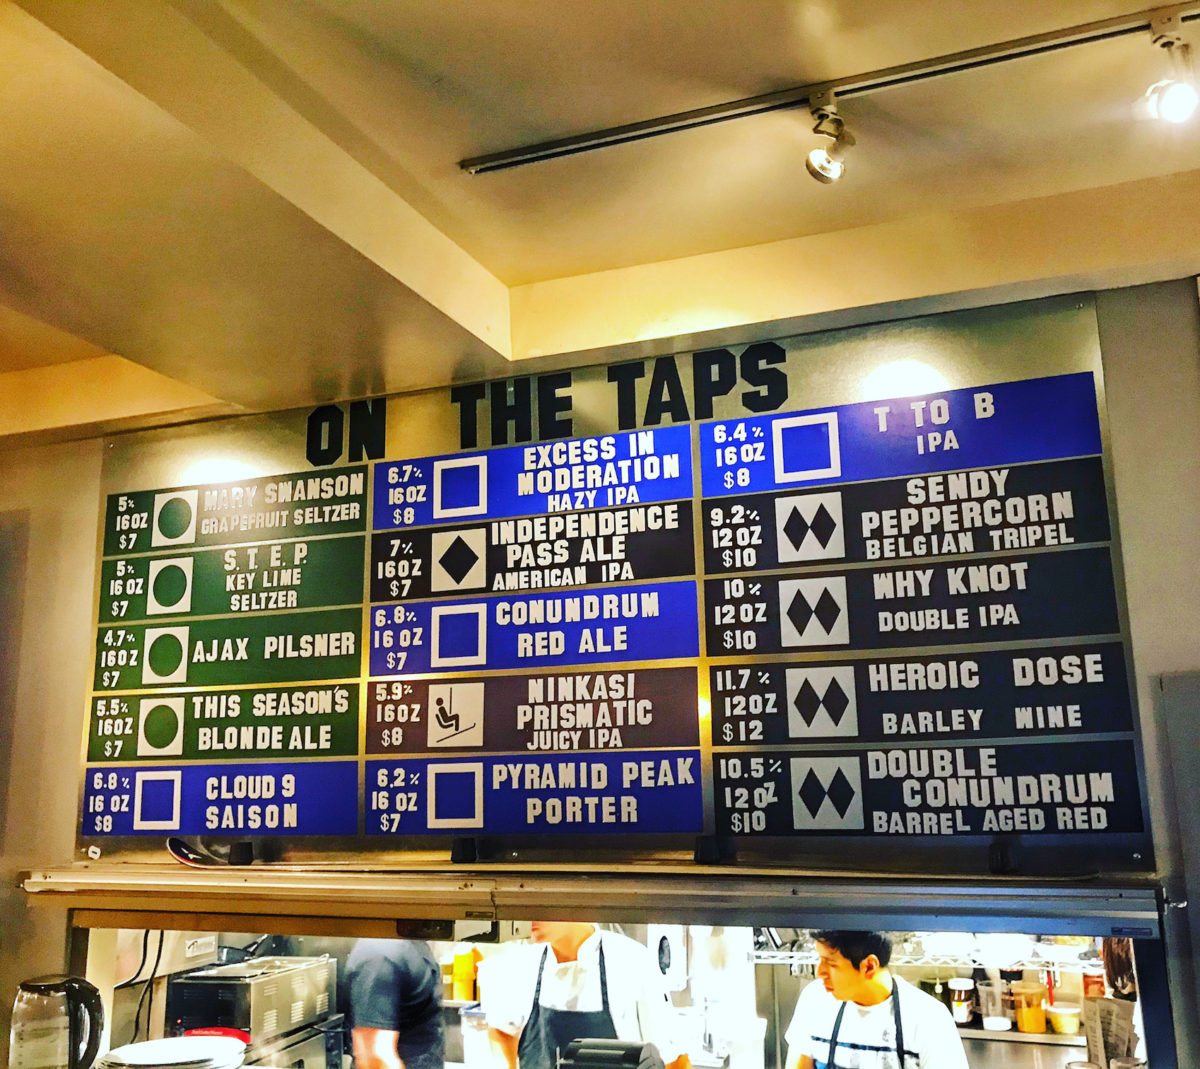 a menu listing a variety of beers on tap